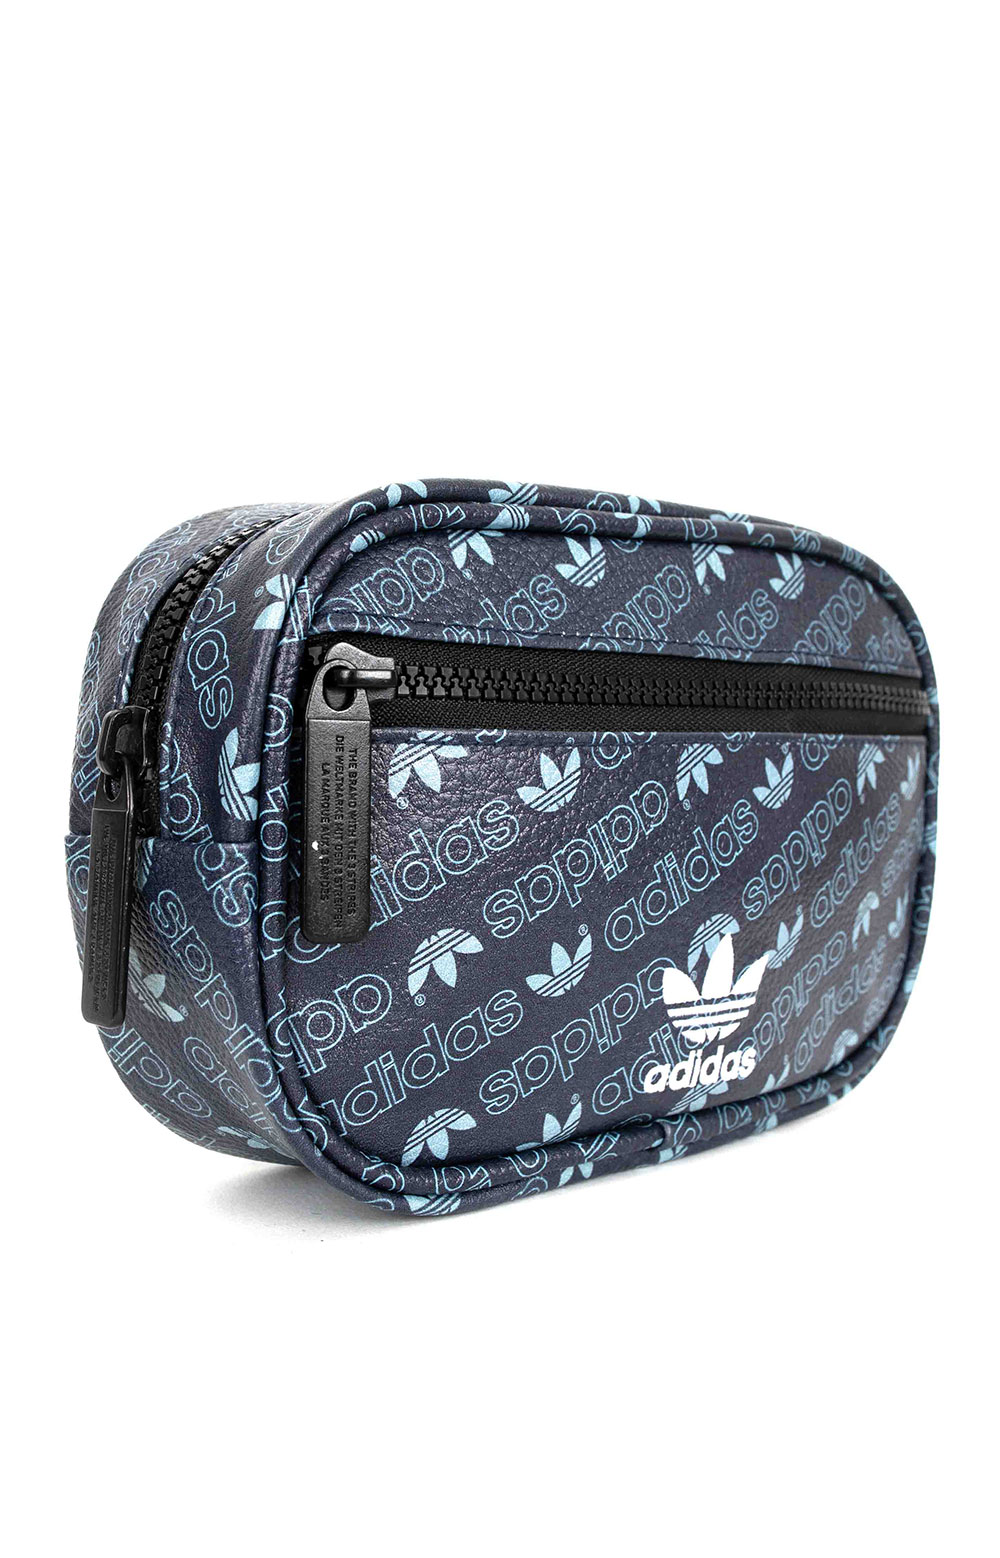 PU Leather Waist Pack - Collegiate Navy